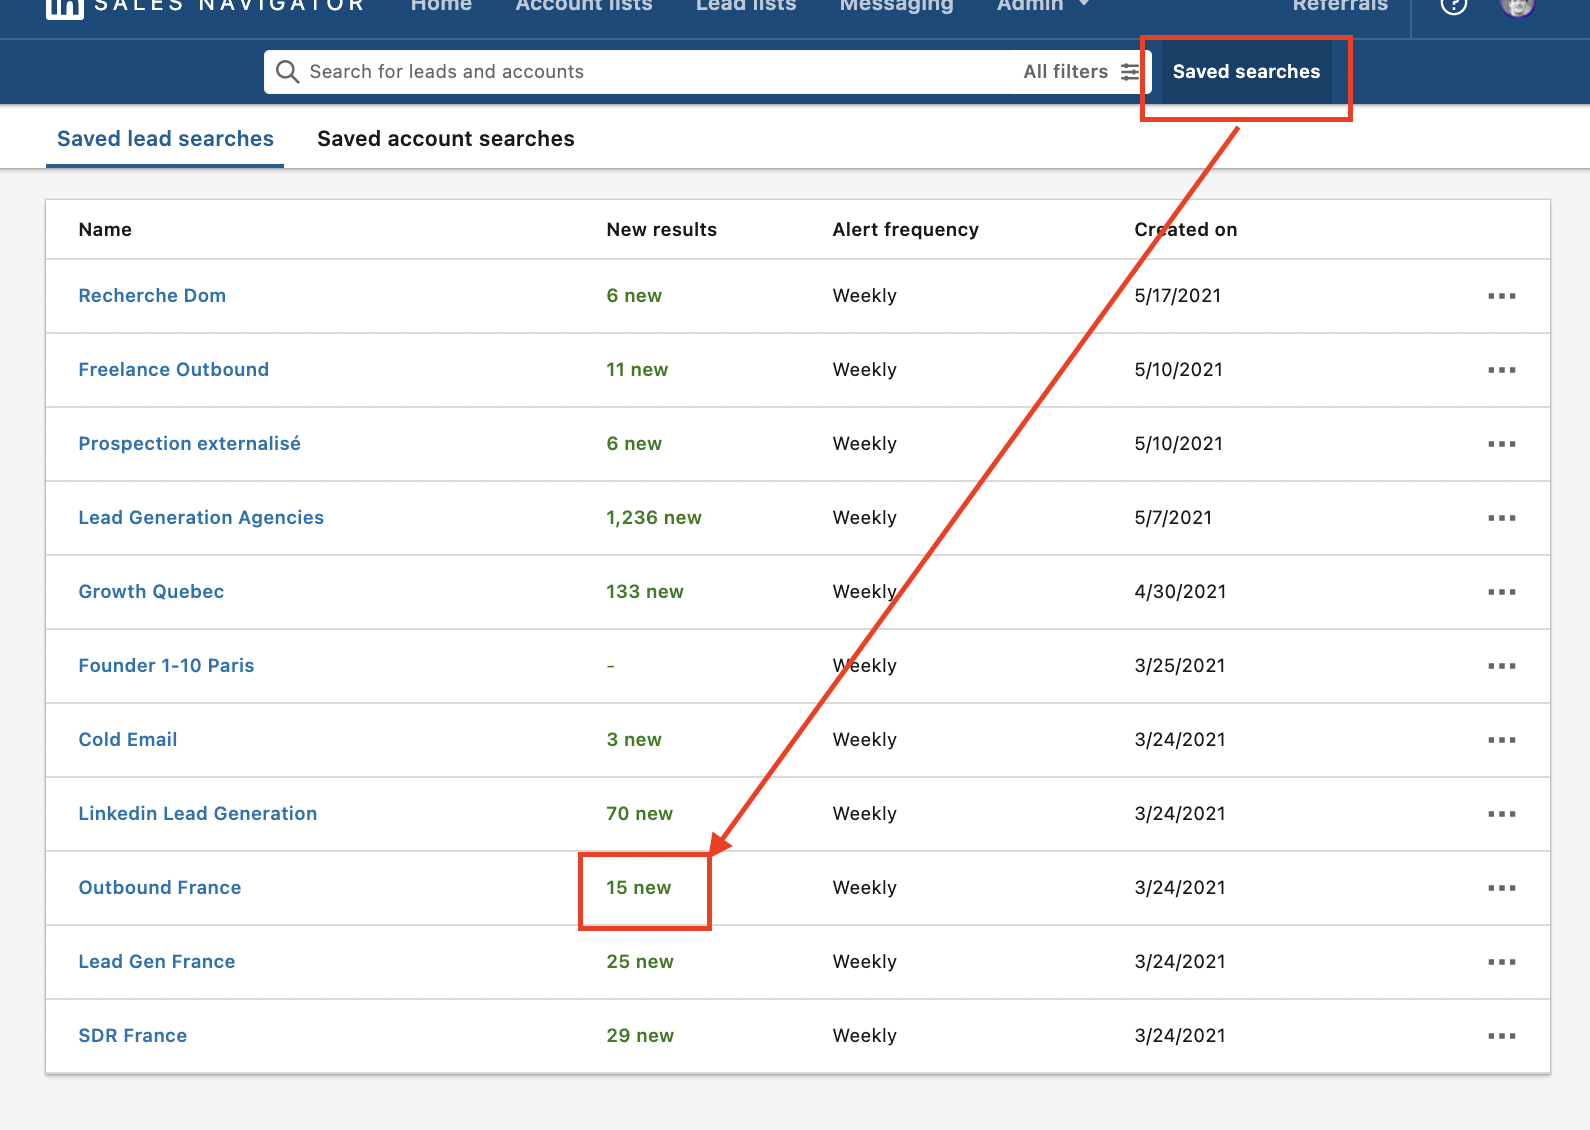 new-results-saved-search-linkedin-sales-navigator.png